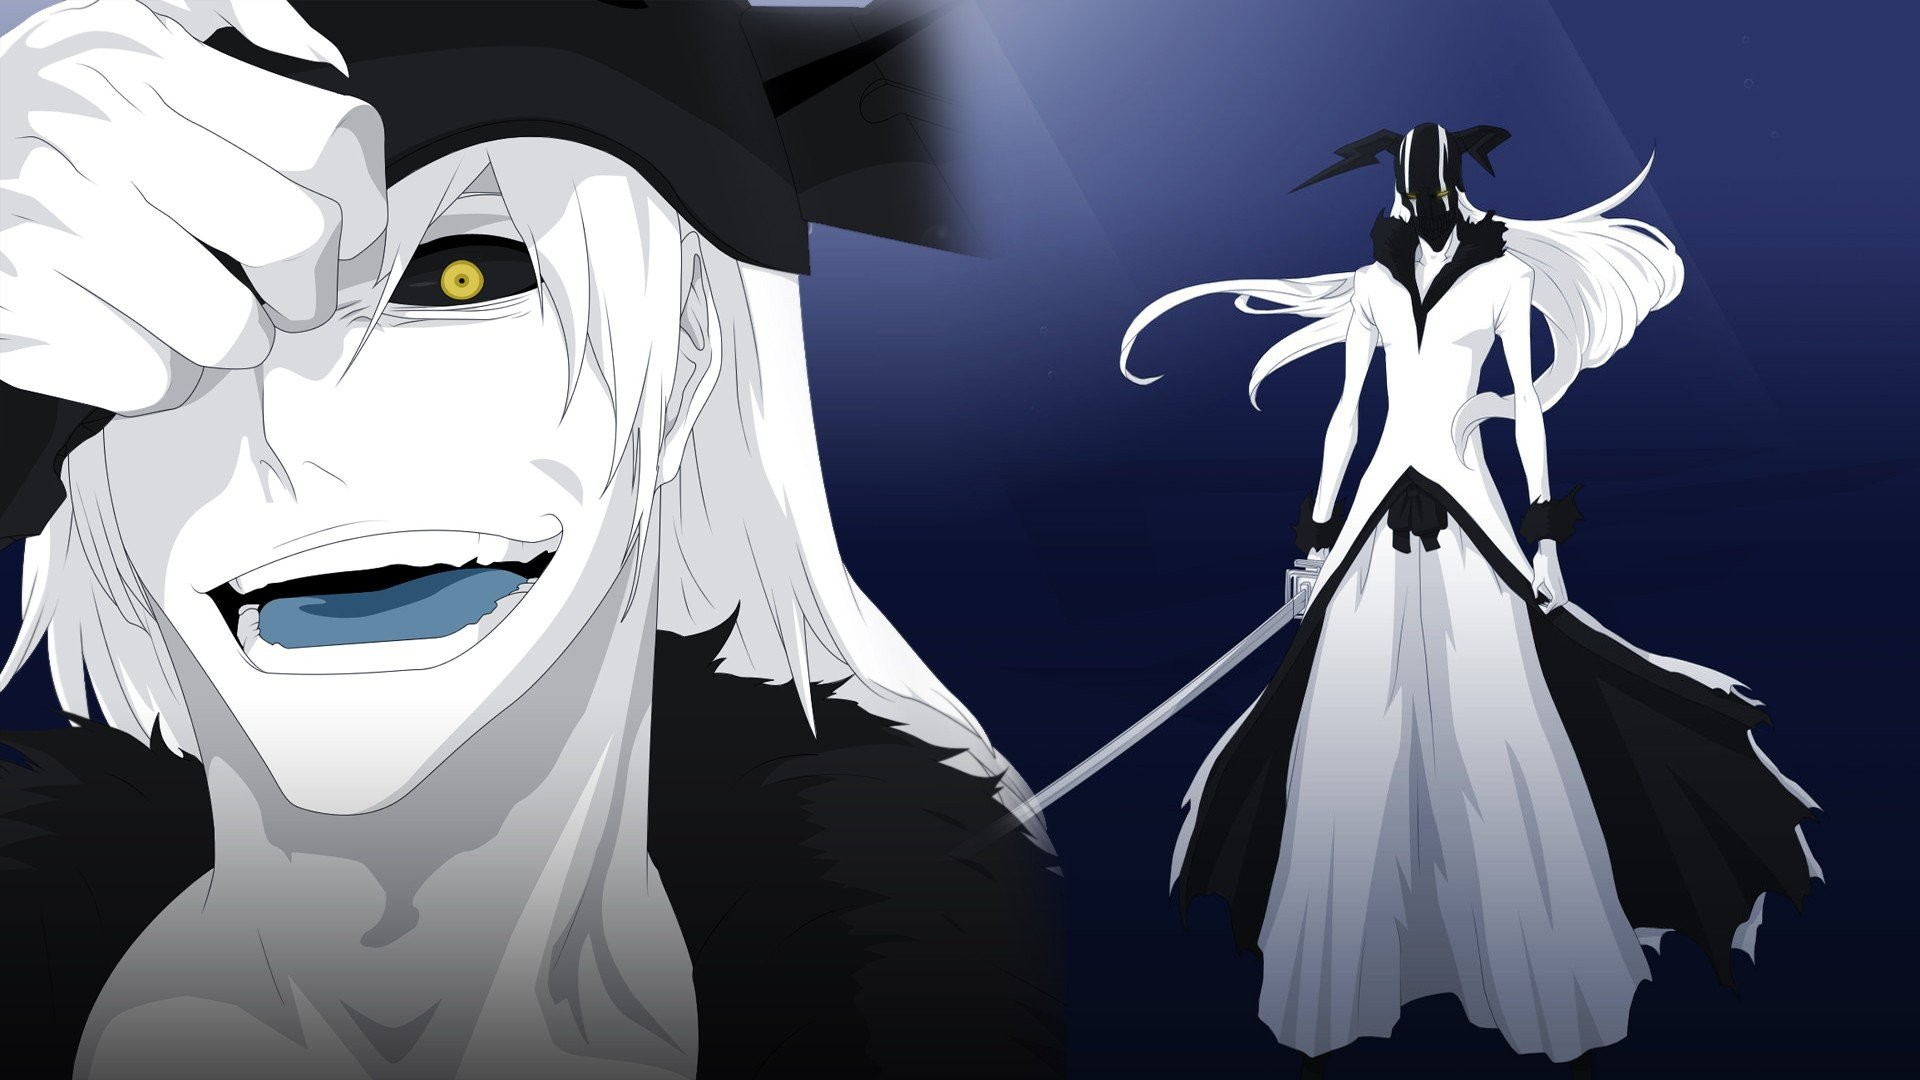 Bleach wallpaper hollow x for android tablet pic mch025337 dzbc download voltagebd Choice Image